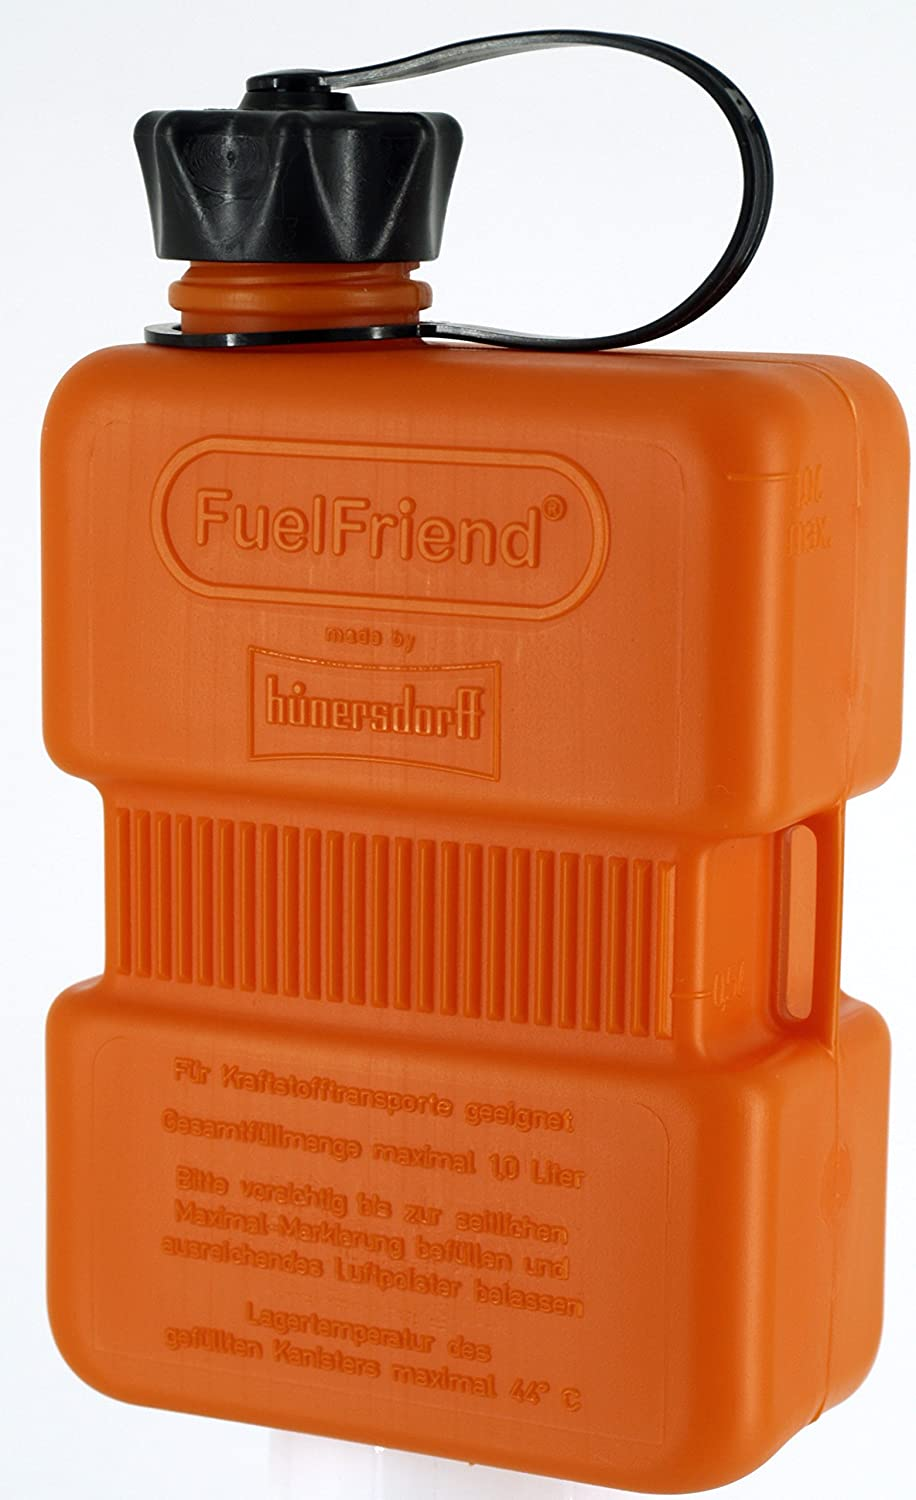 FuelFriend®-Plus Orange - Series Especiales - Bidón 1.5 litros + caño bloqueable: Amazon.es: Coche y moto